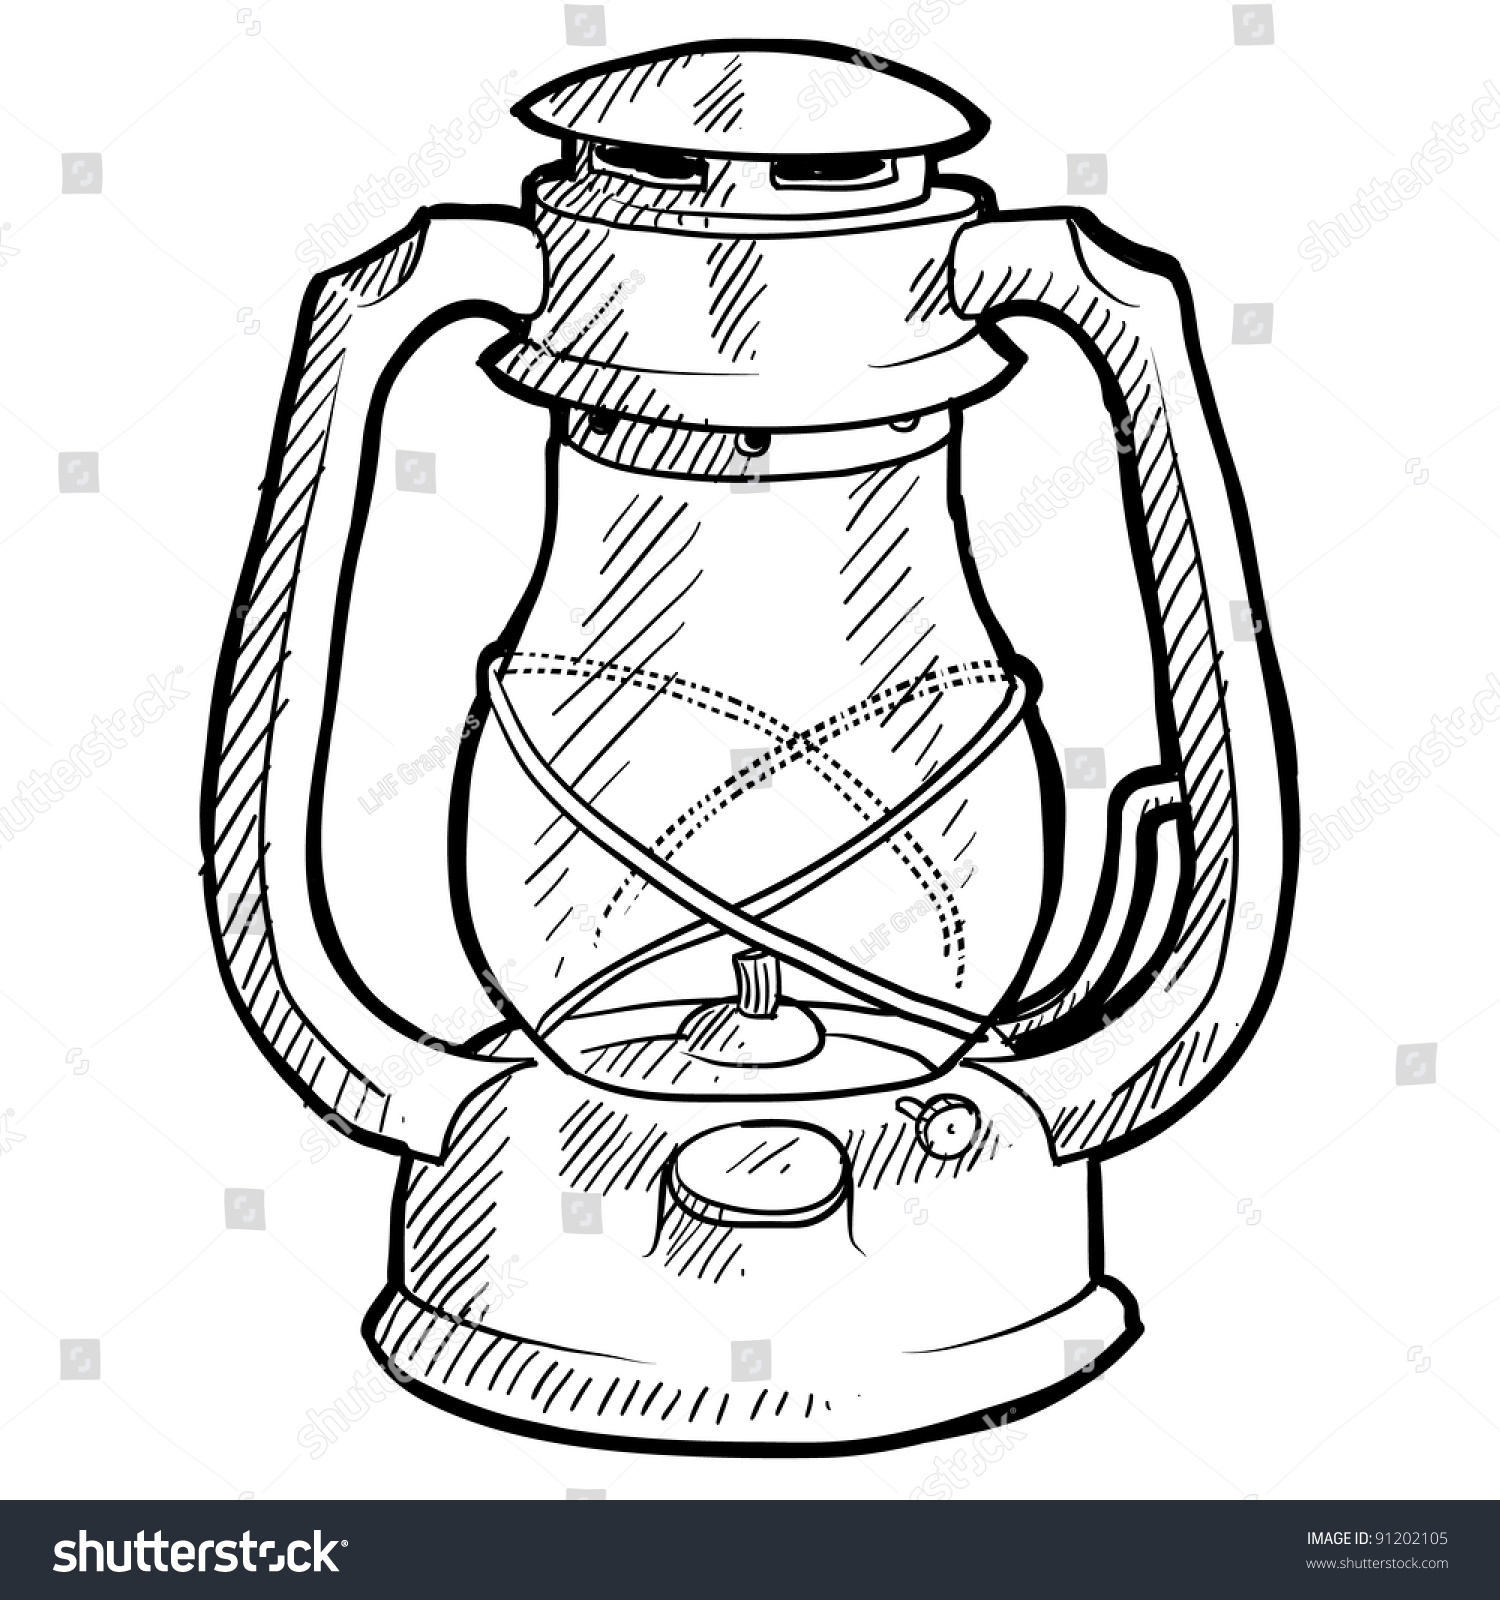 Doodle Style Retro Camping Lantern Illustration In Vector Format Suitable For Web Print Or